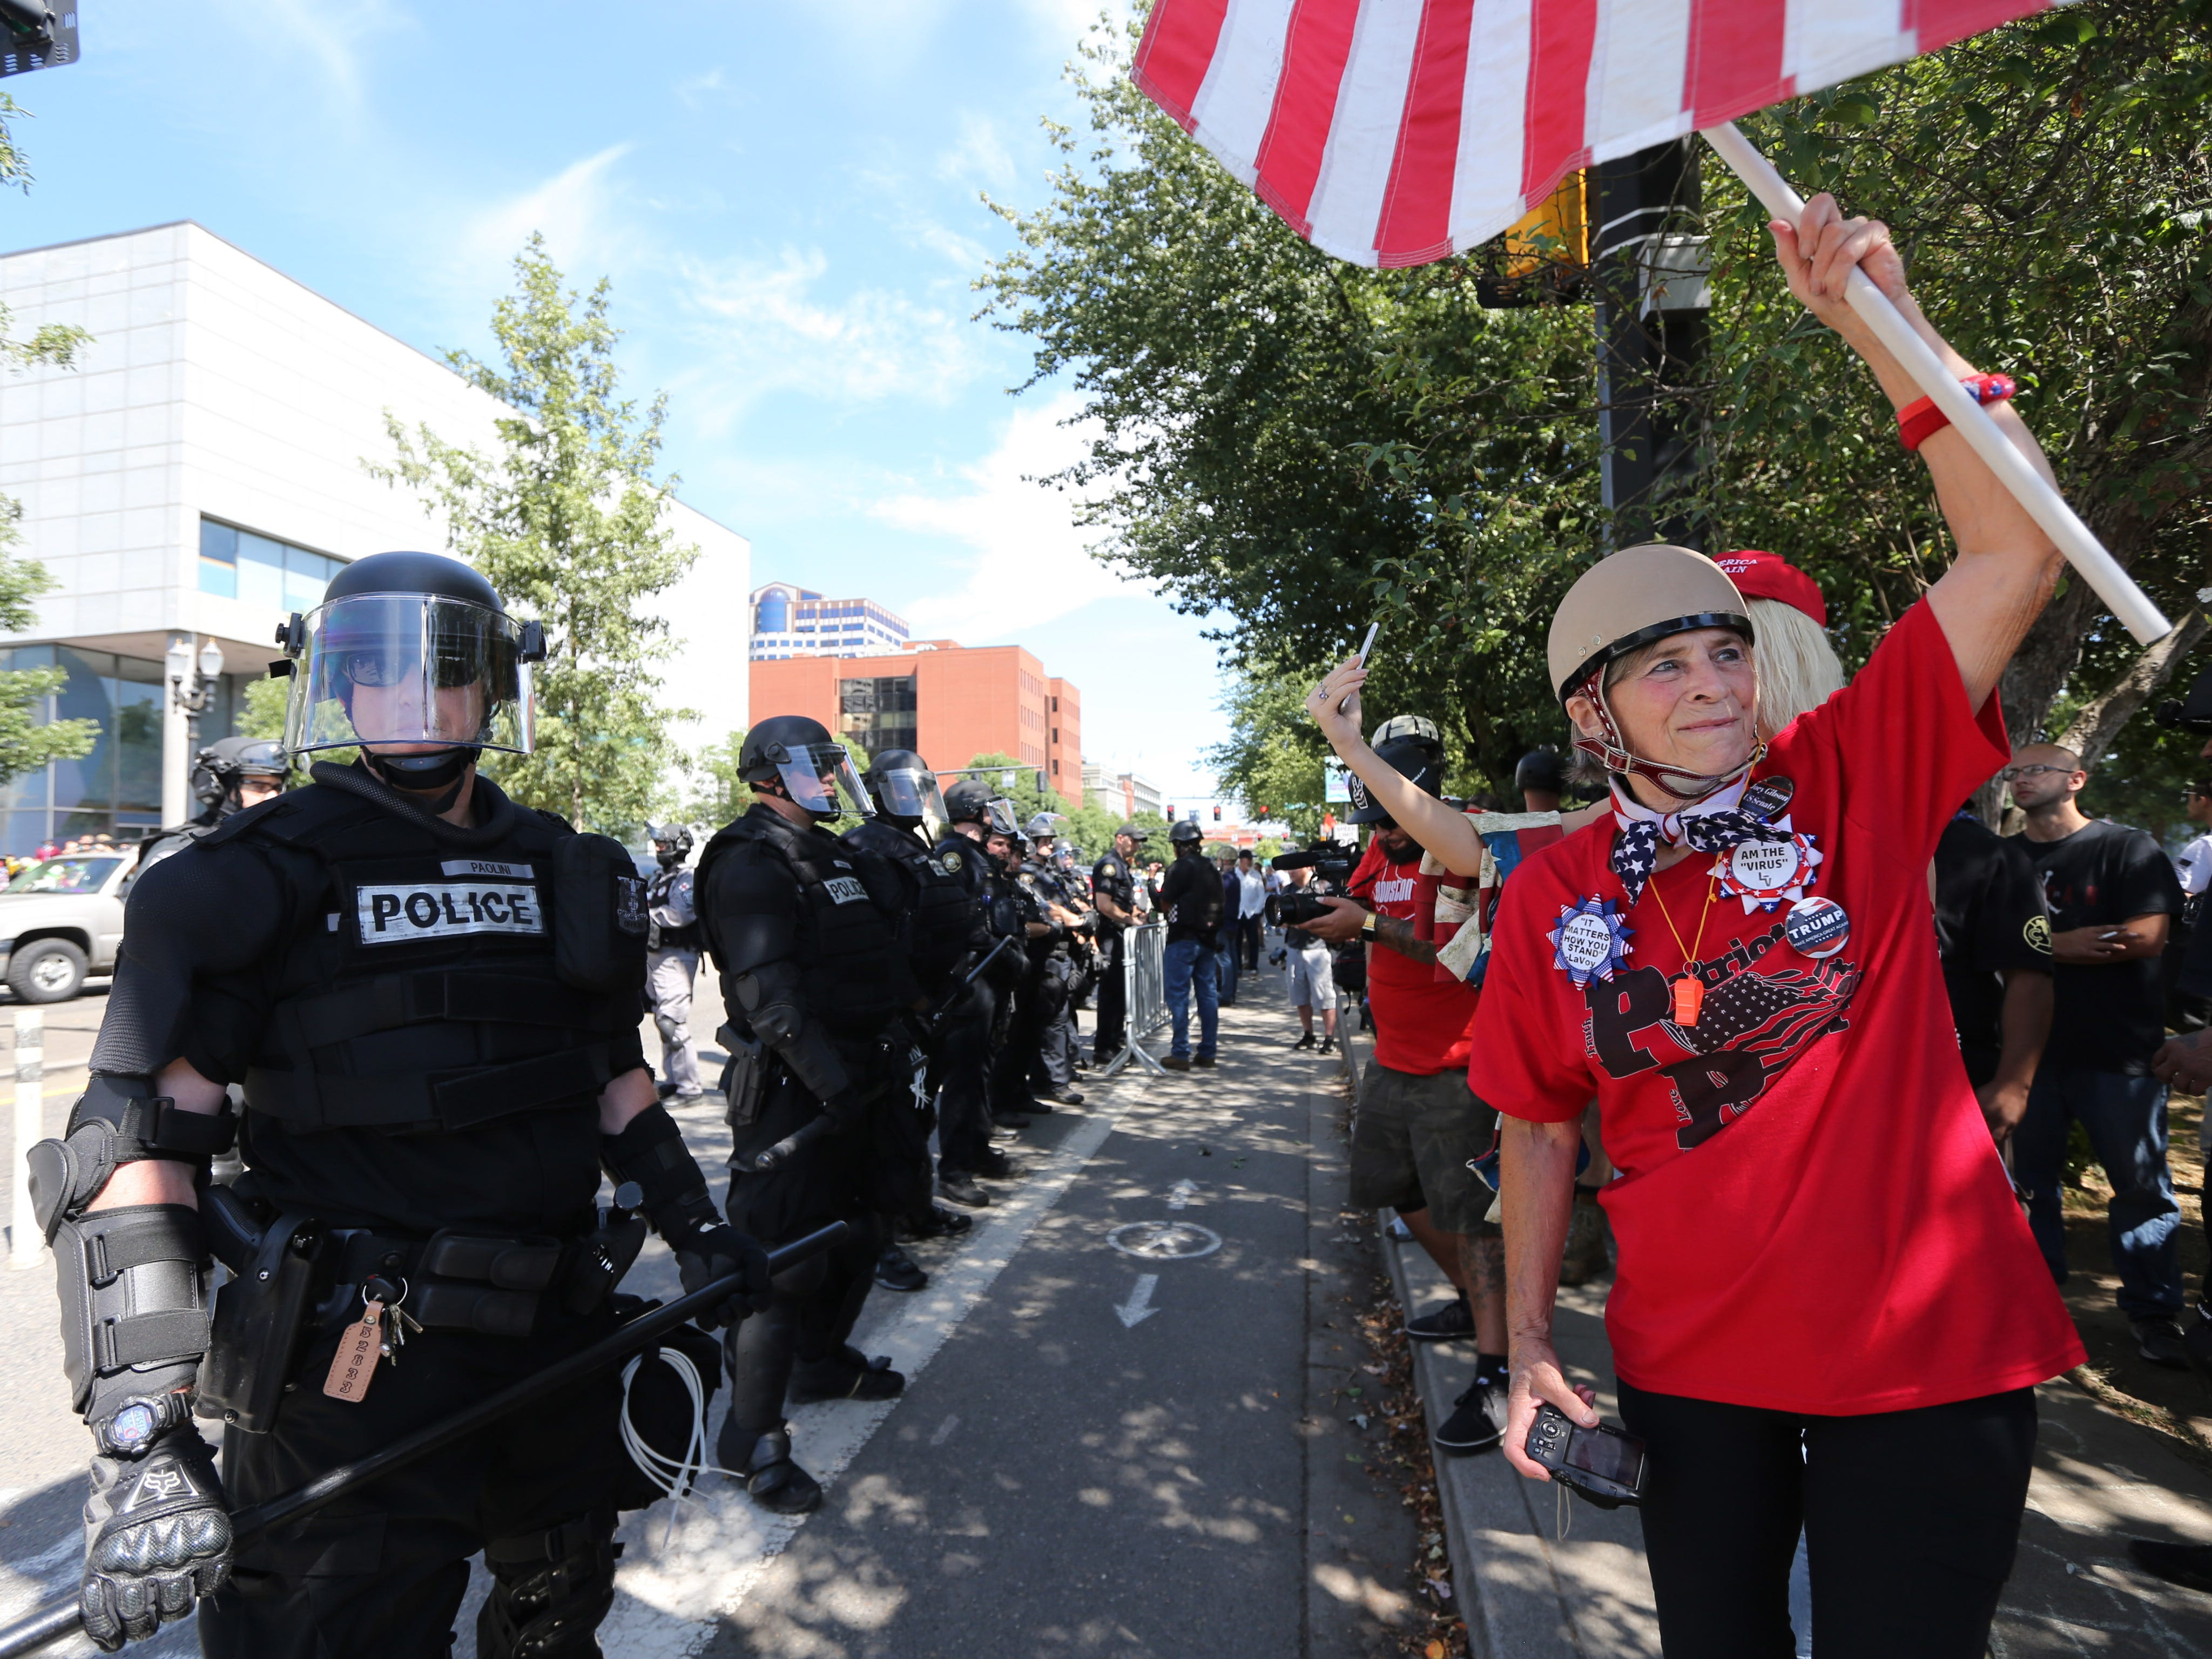 Far-Right protesters rally for gun rights' laws and free speech on August 4, 2018 in Portland, Oregon.